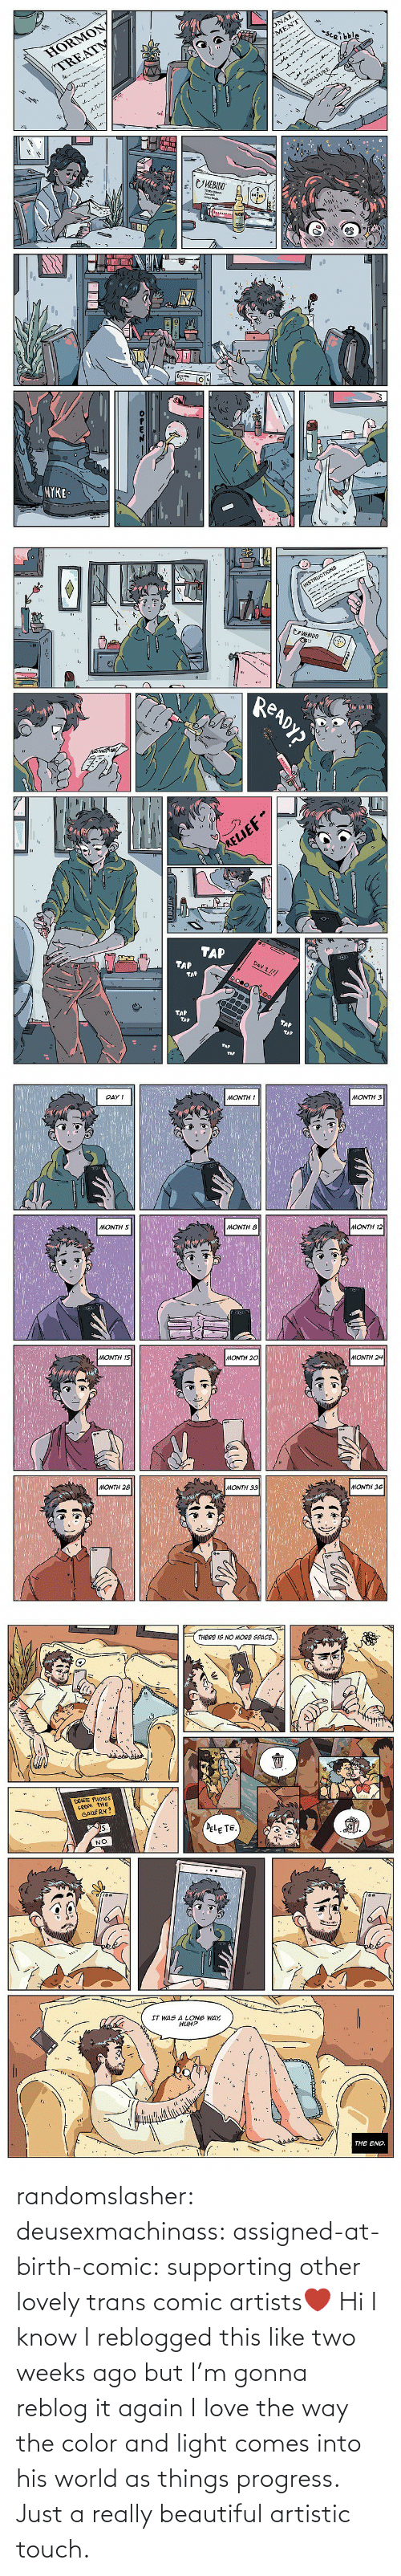 It Again: randomslasher: deusexmachinass:  assigned-at-birth-comic: supporting other lovely trans comic artists❤  Hi I know I reblogged this like two weeks ago but I'm gonna reblog it again  I love the way the color and light comes into his world as things progress. Just a really beautiful artistic touch.